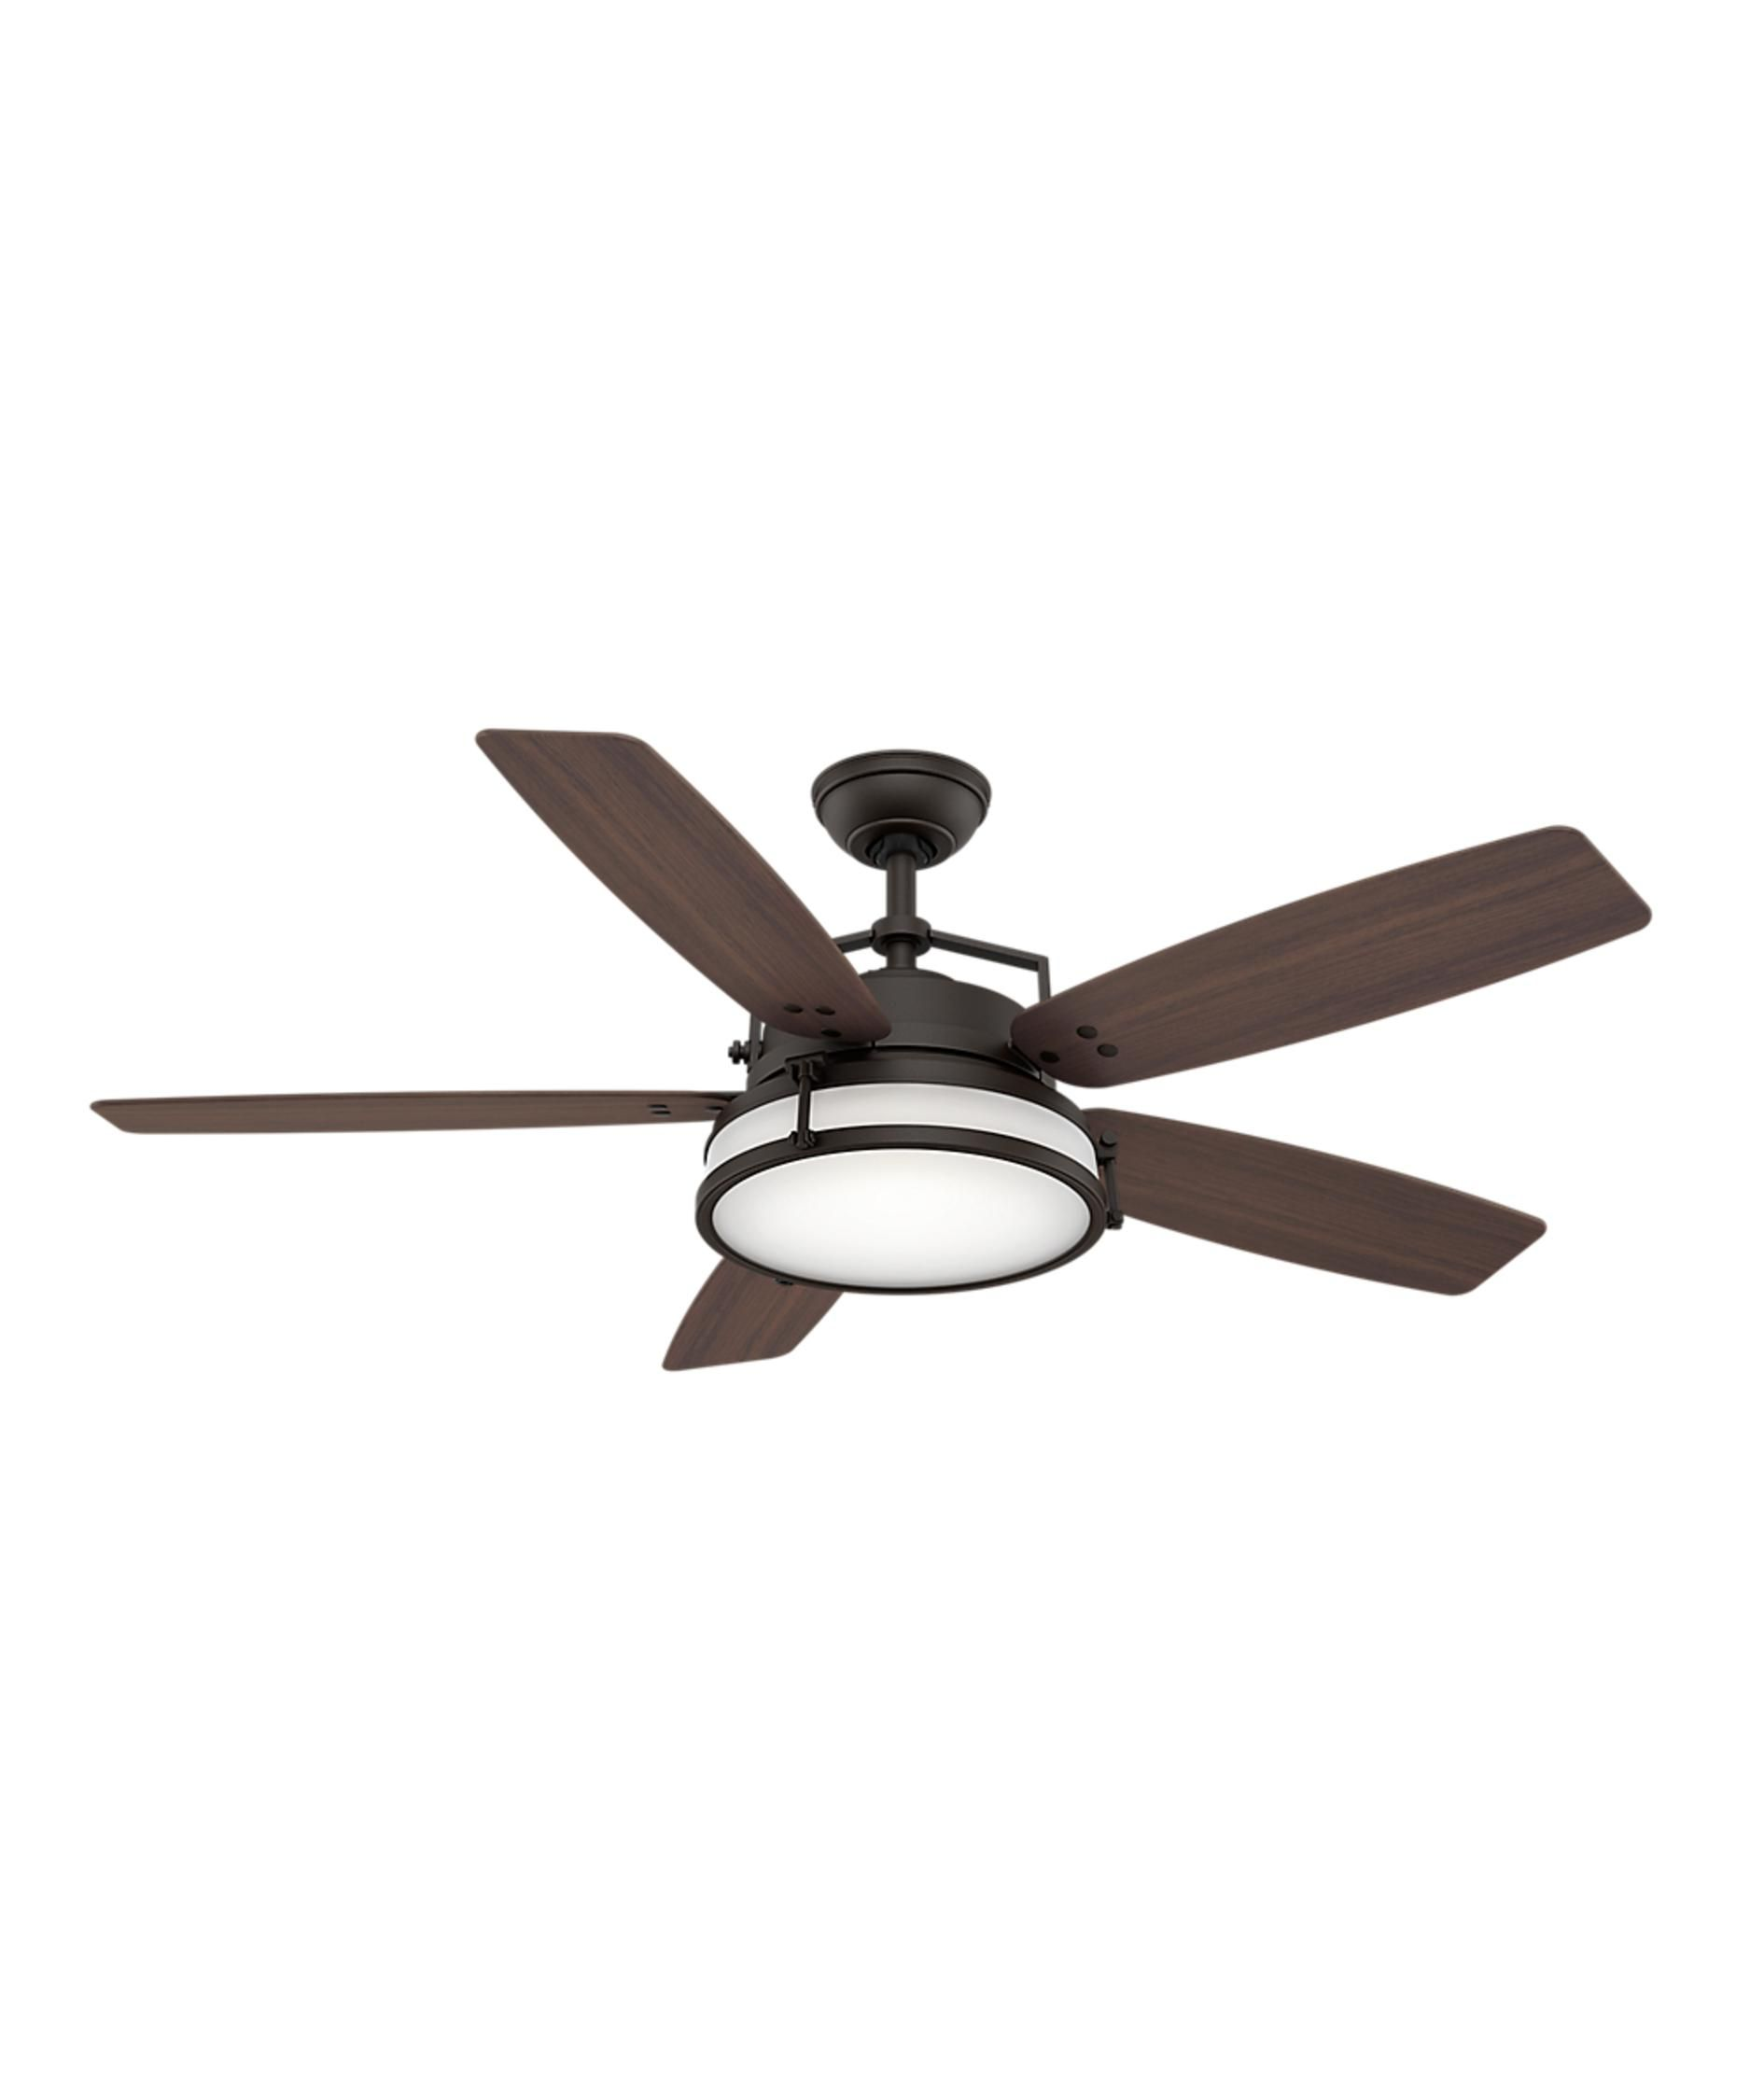 Casablanca Caneel Bay 56 Inch Ceiling Fan With Light Kit